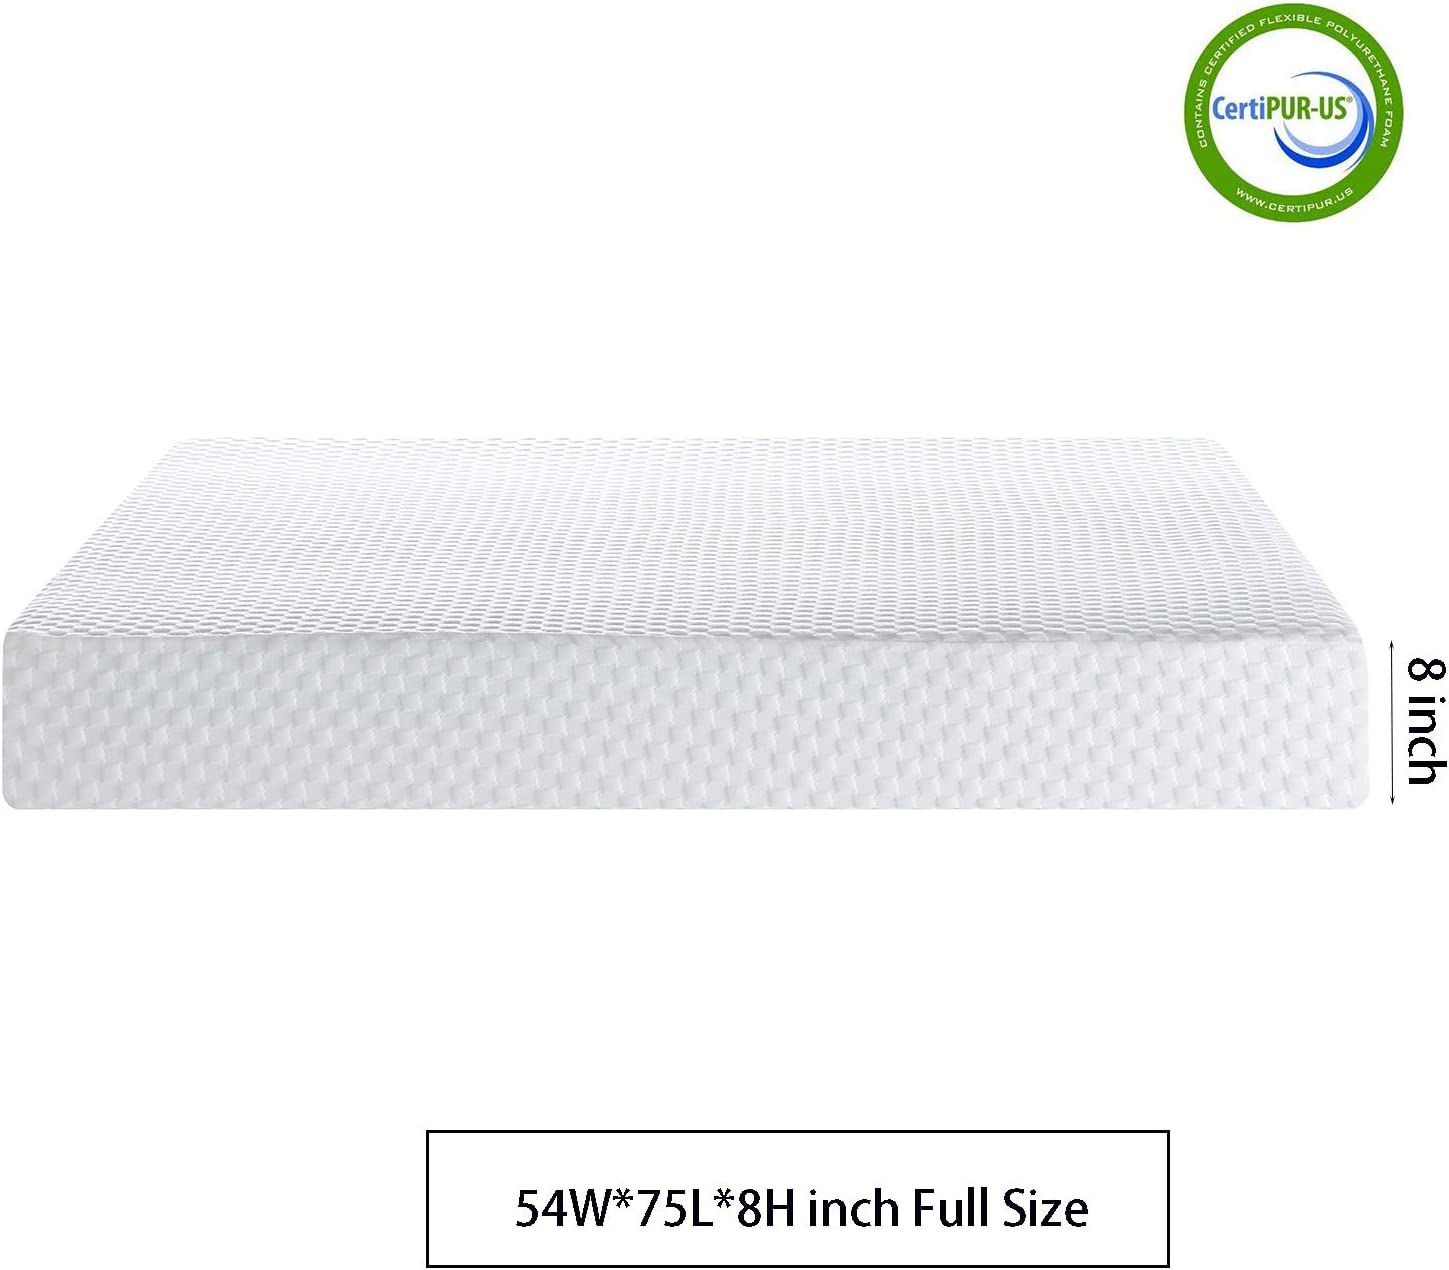 8 inch Full Size Mattress,JULYFOX Cooling Gel Memory Foam Mattress Medium-Firm Feel 3 Layer Foam ONLY Full Mattress for Bunk Bed Kid s Bed 10 Year 10 Year Durable